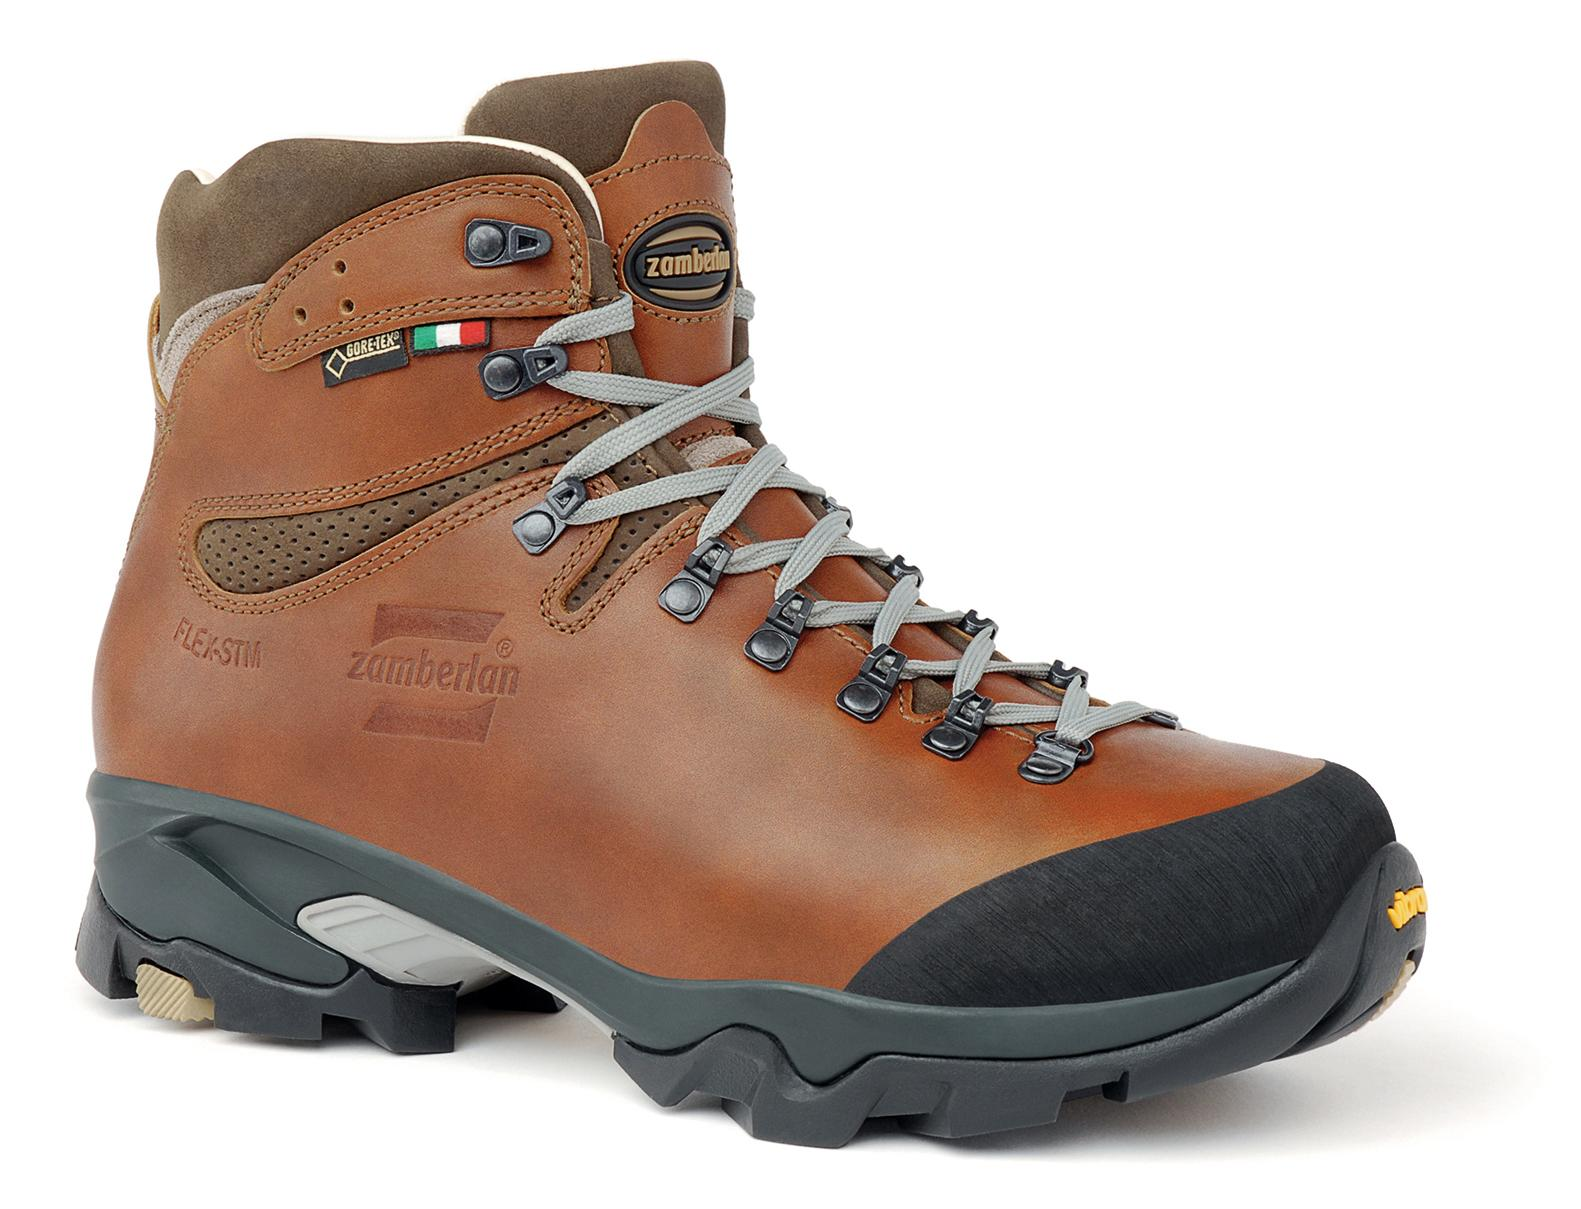 1996 Vioz Lux Gtx 174 Rr Men S Hiking Boots Made In Italy